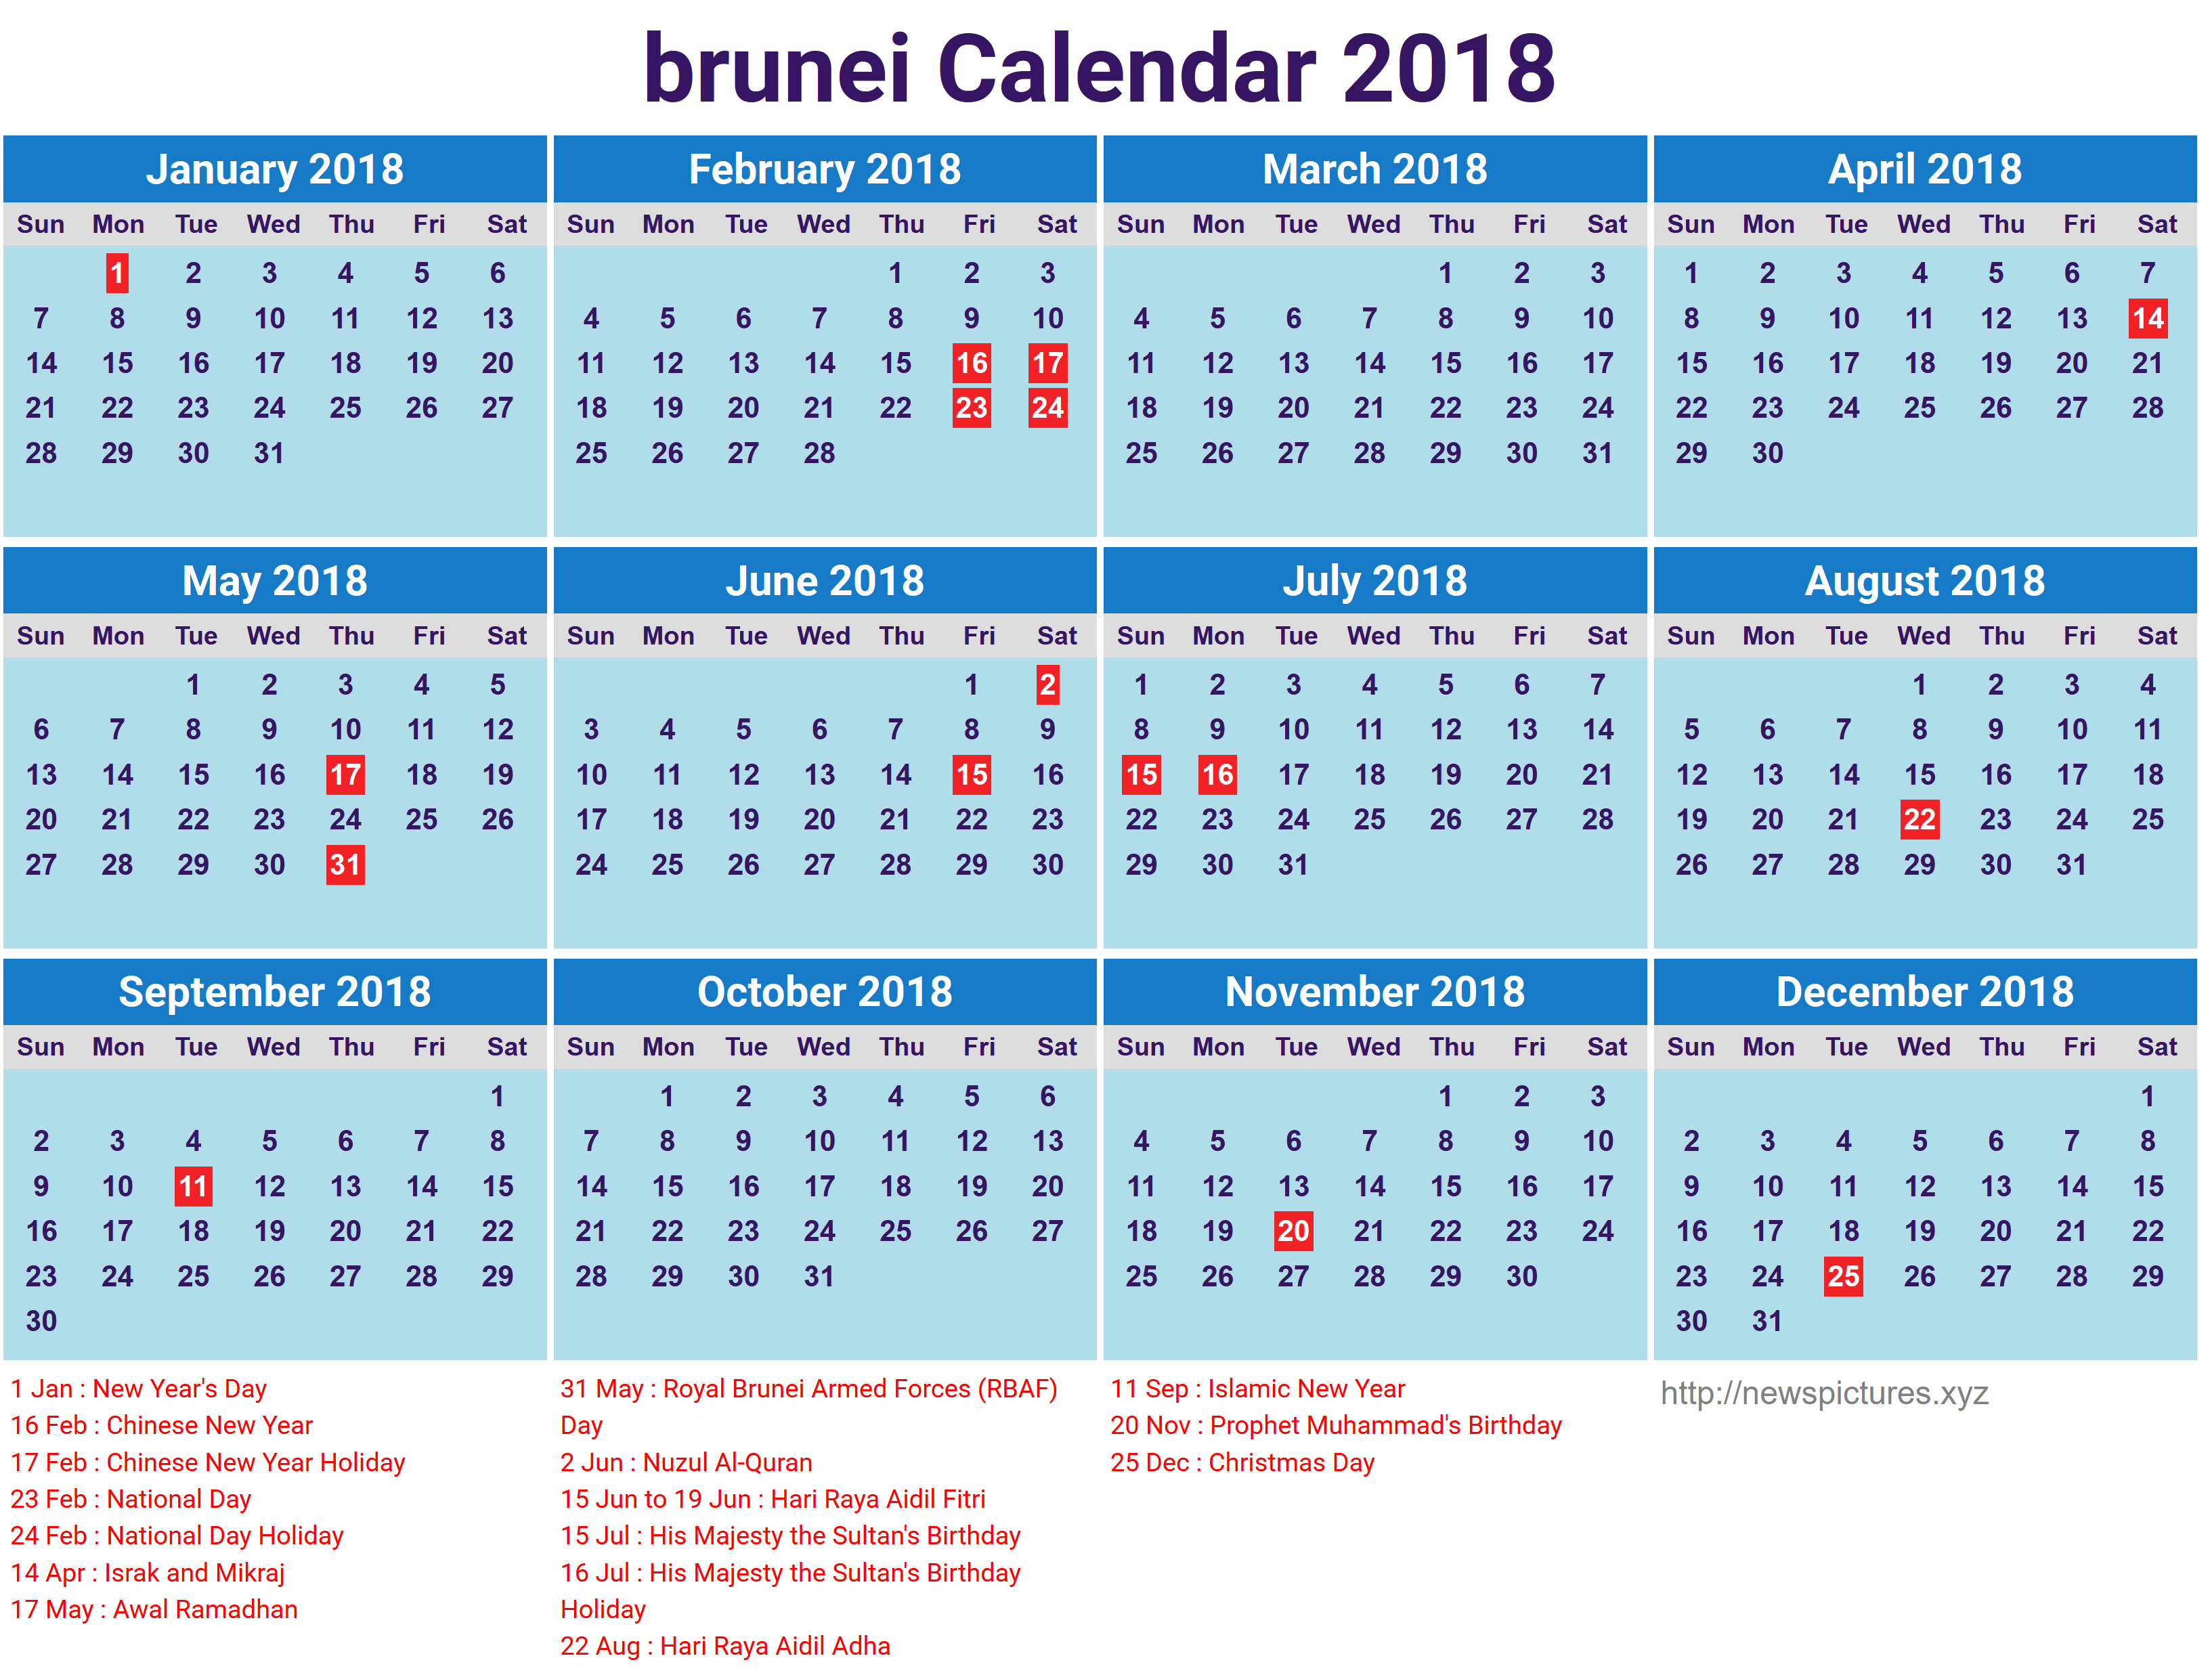 School Calendar 2018 Brunei : Printable brunei calendar with holidays list